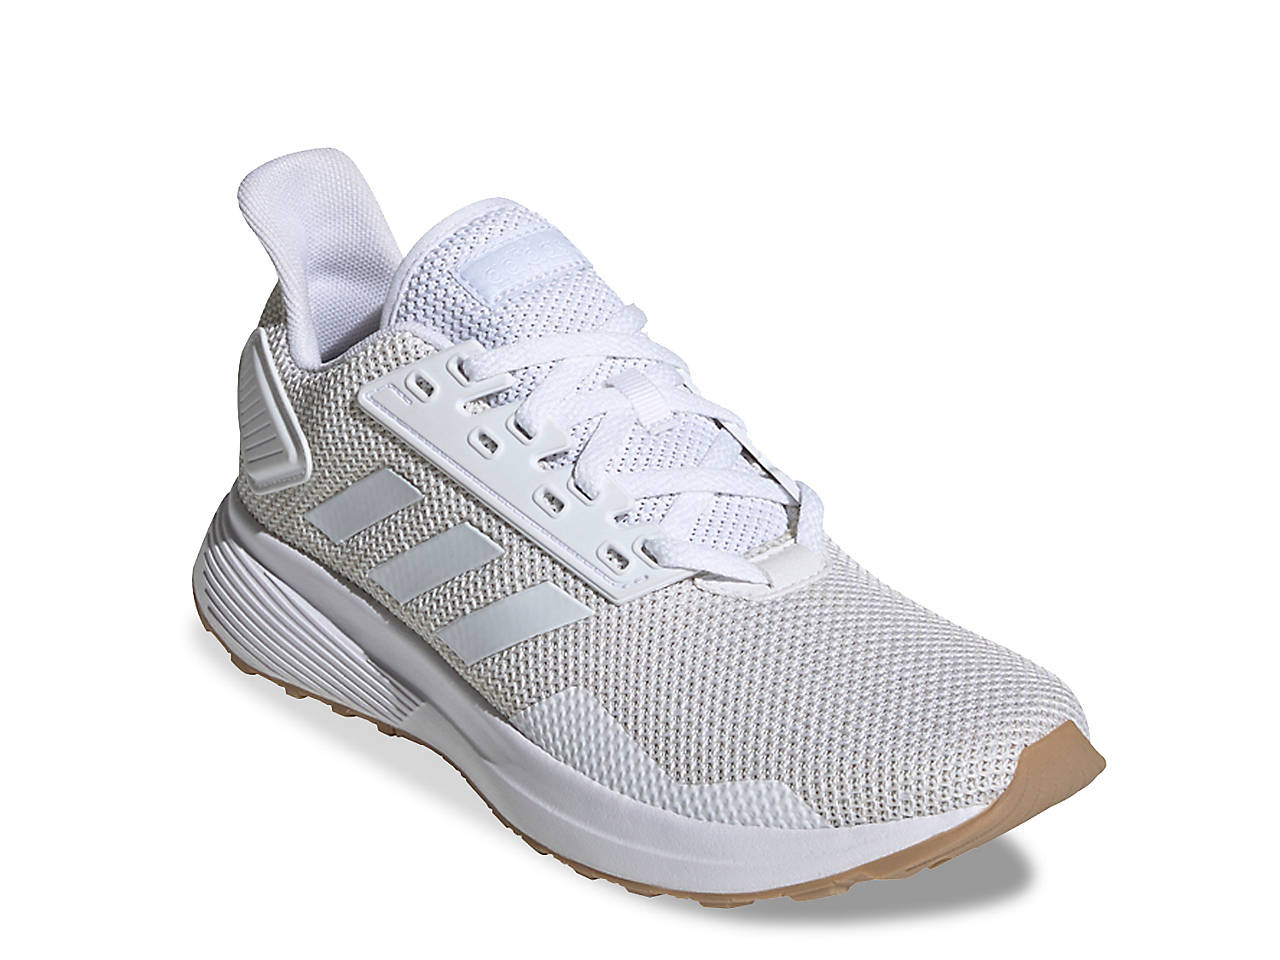 42390bb93d6 adidas Duramo 9 Running Shoe - Women's Women's Shoes | DSW